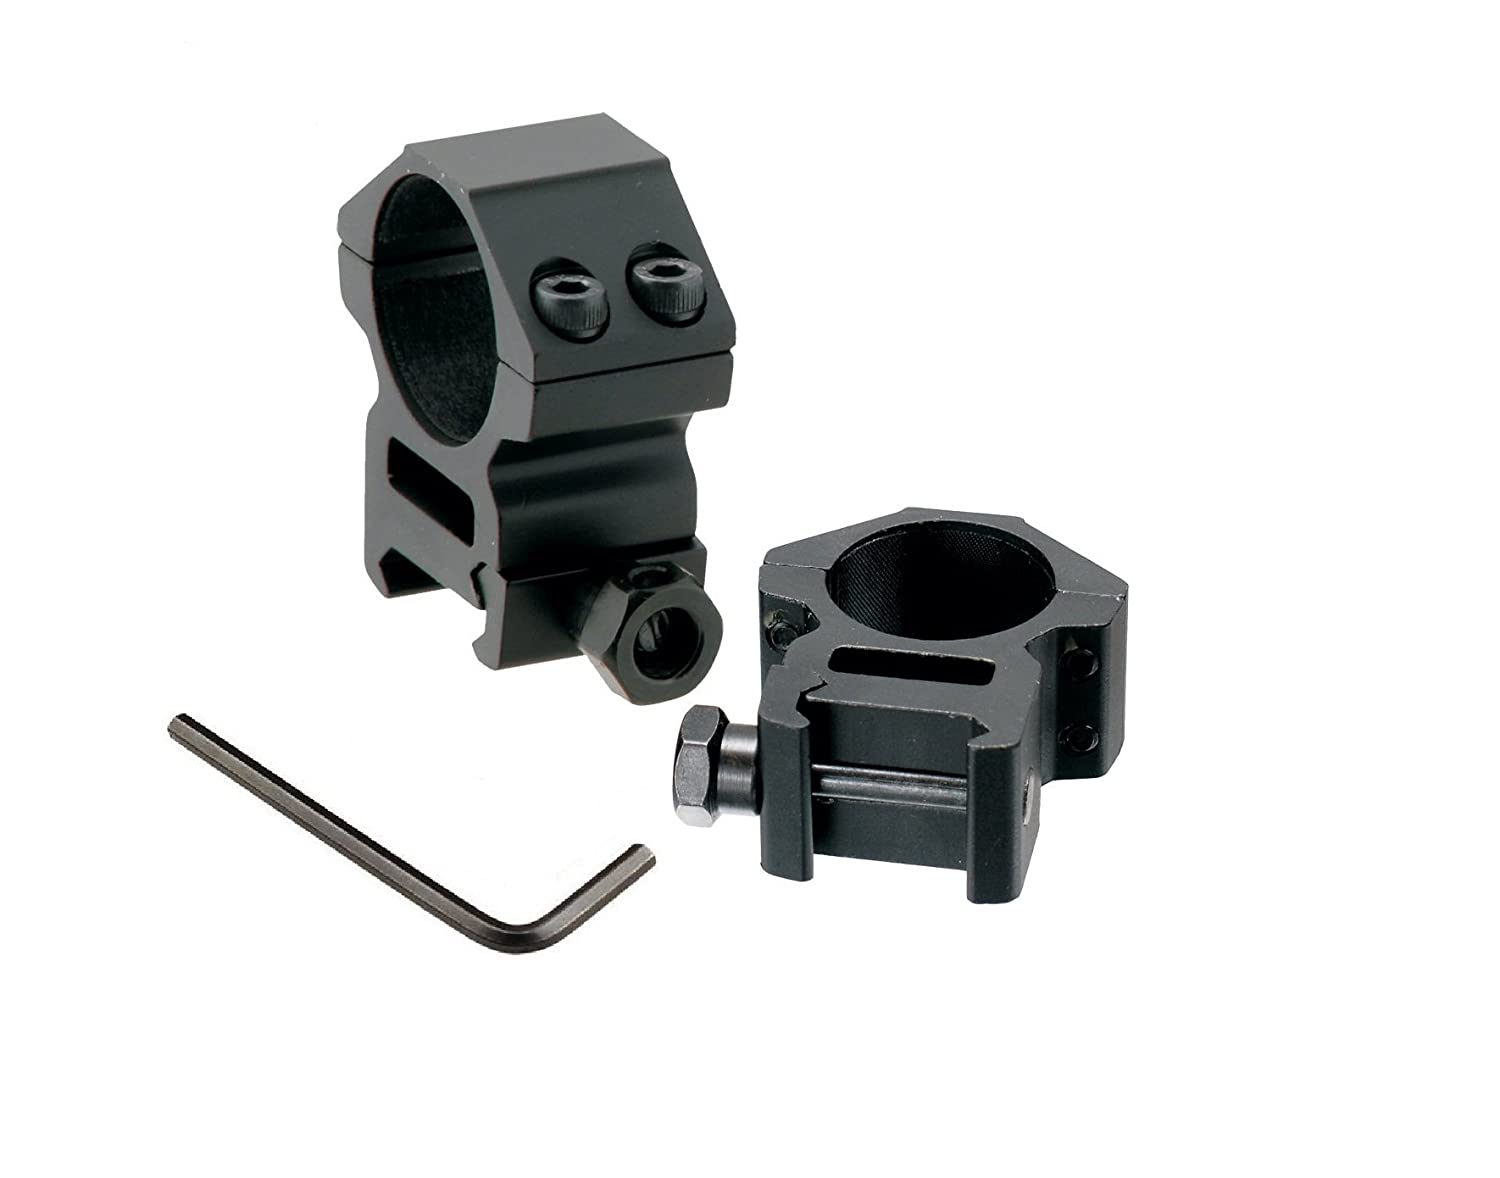 GS33 SYSTEM Picatinny/Weaver Medium Profile 2-piece 1-inch Rings(Including a wrench) by GS33 System